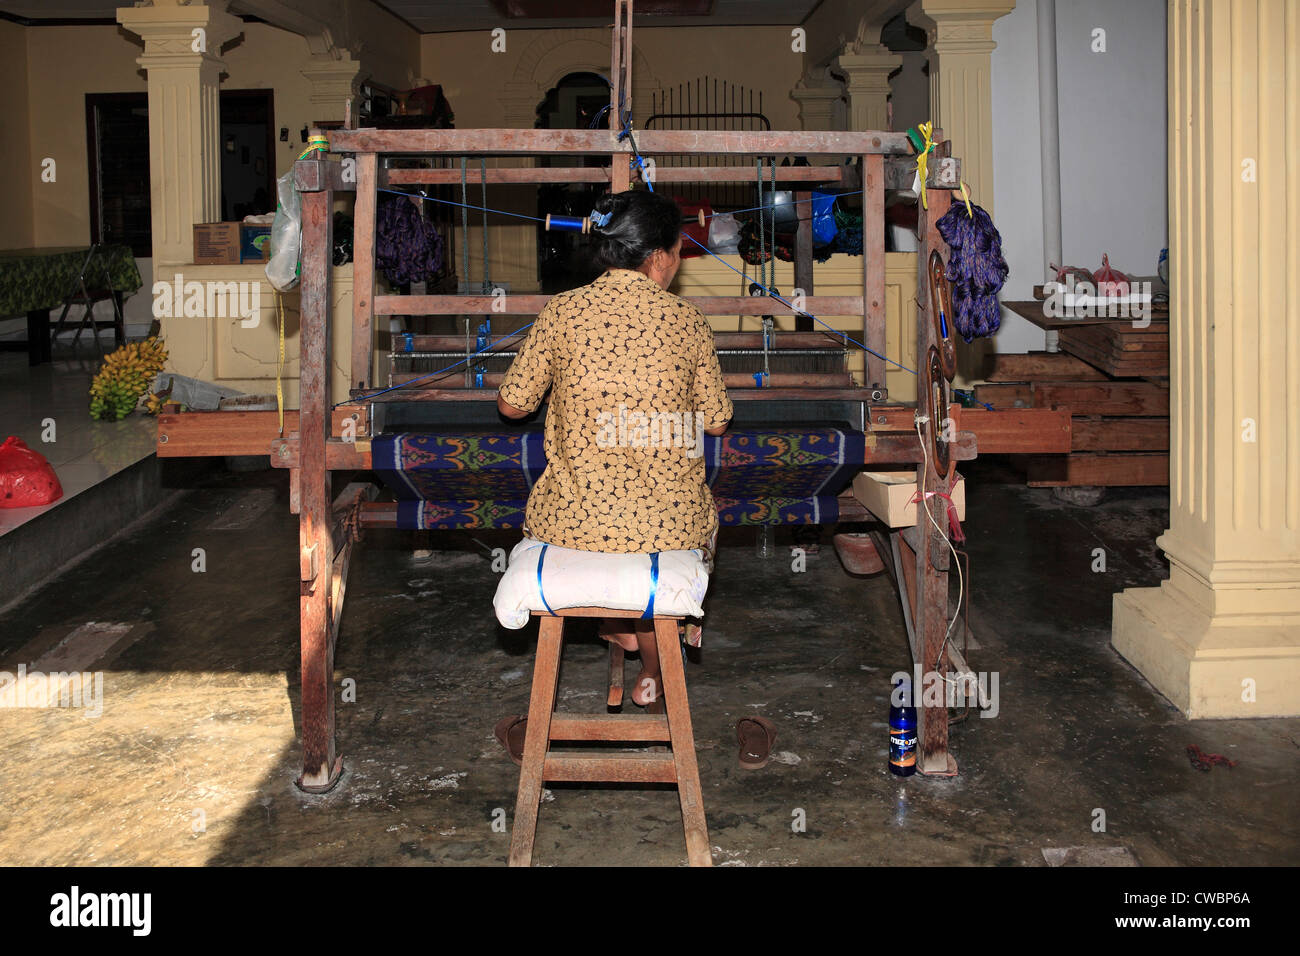 A process of Ikat fabric weaving. Weaving on a footloom. - Stock Image